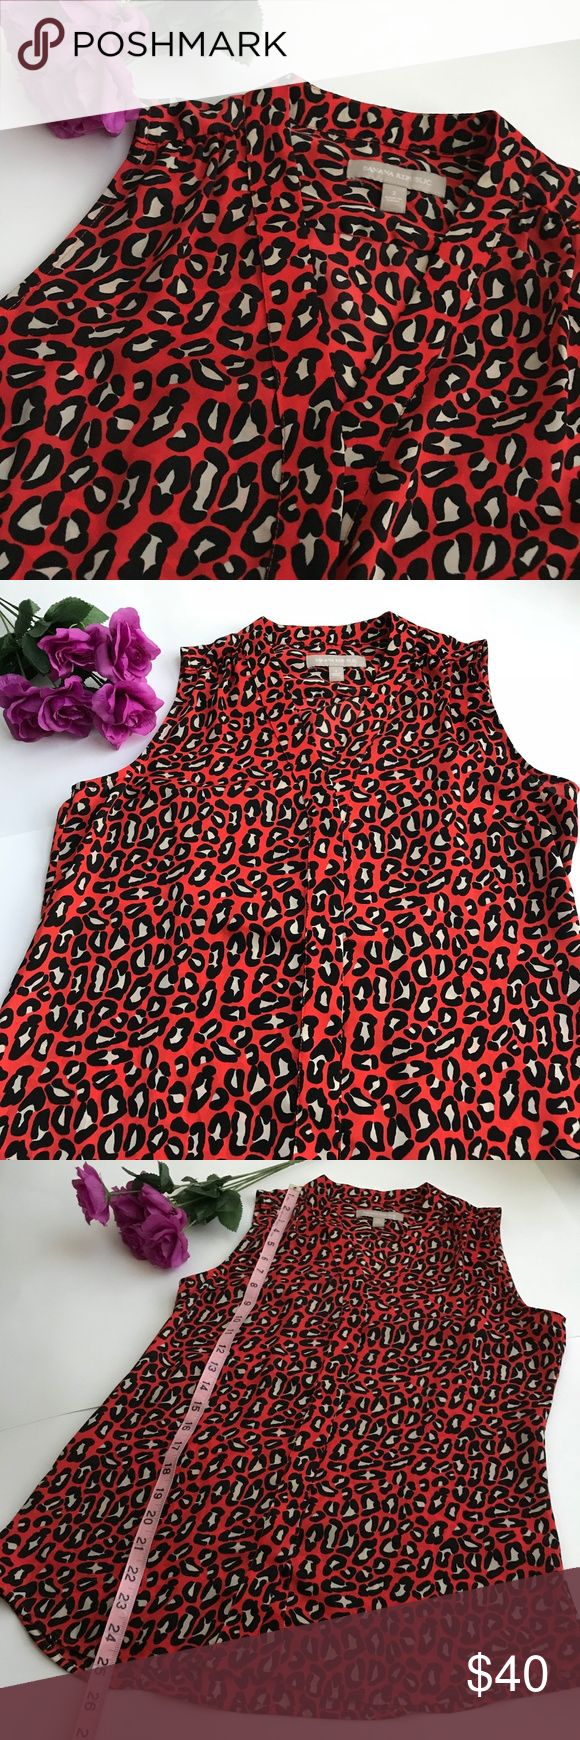 Banana Republic red animal print blouse LIKE NEW Banana Republic animal print top; great with dark blue jeans!  Size 2 on label, but I normally wear a Size 4 in this brand and this fits well on me.  Flat measurements: 16.5 inches across from armpit to armpit. 25.5 inches long. (Measurements are pictured). 100% Polyester; machine washable Banana Republic Tops Blouses